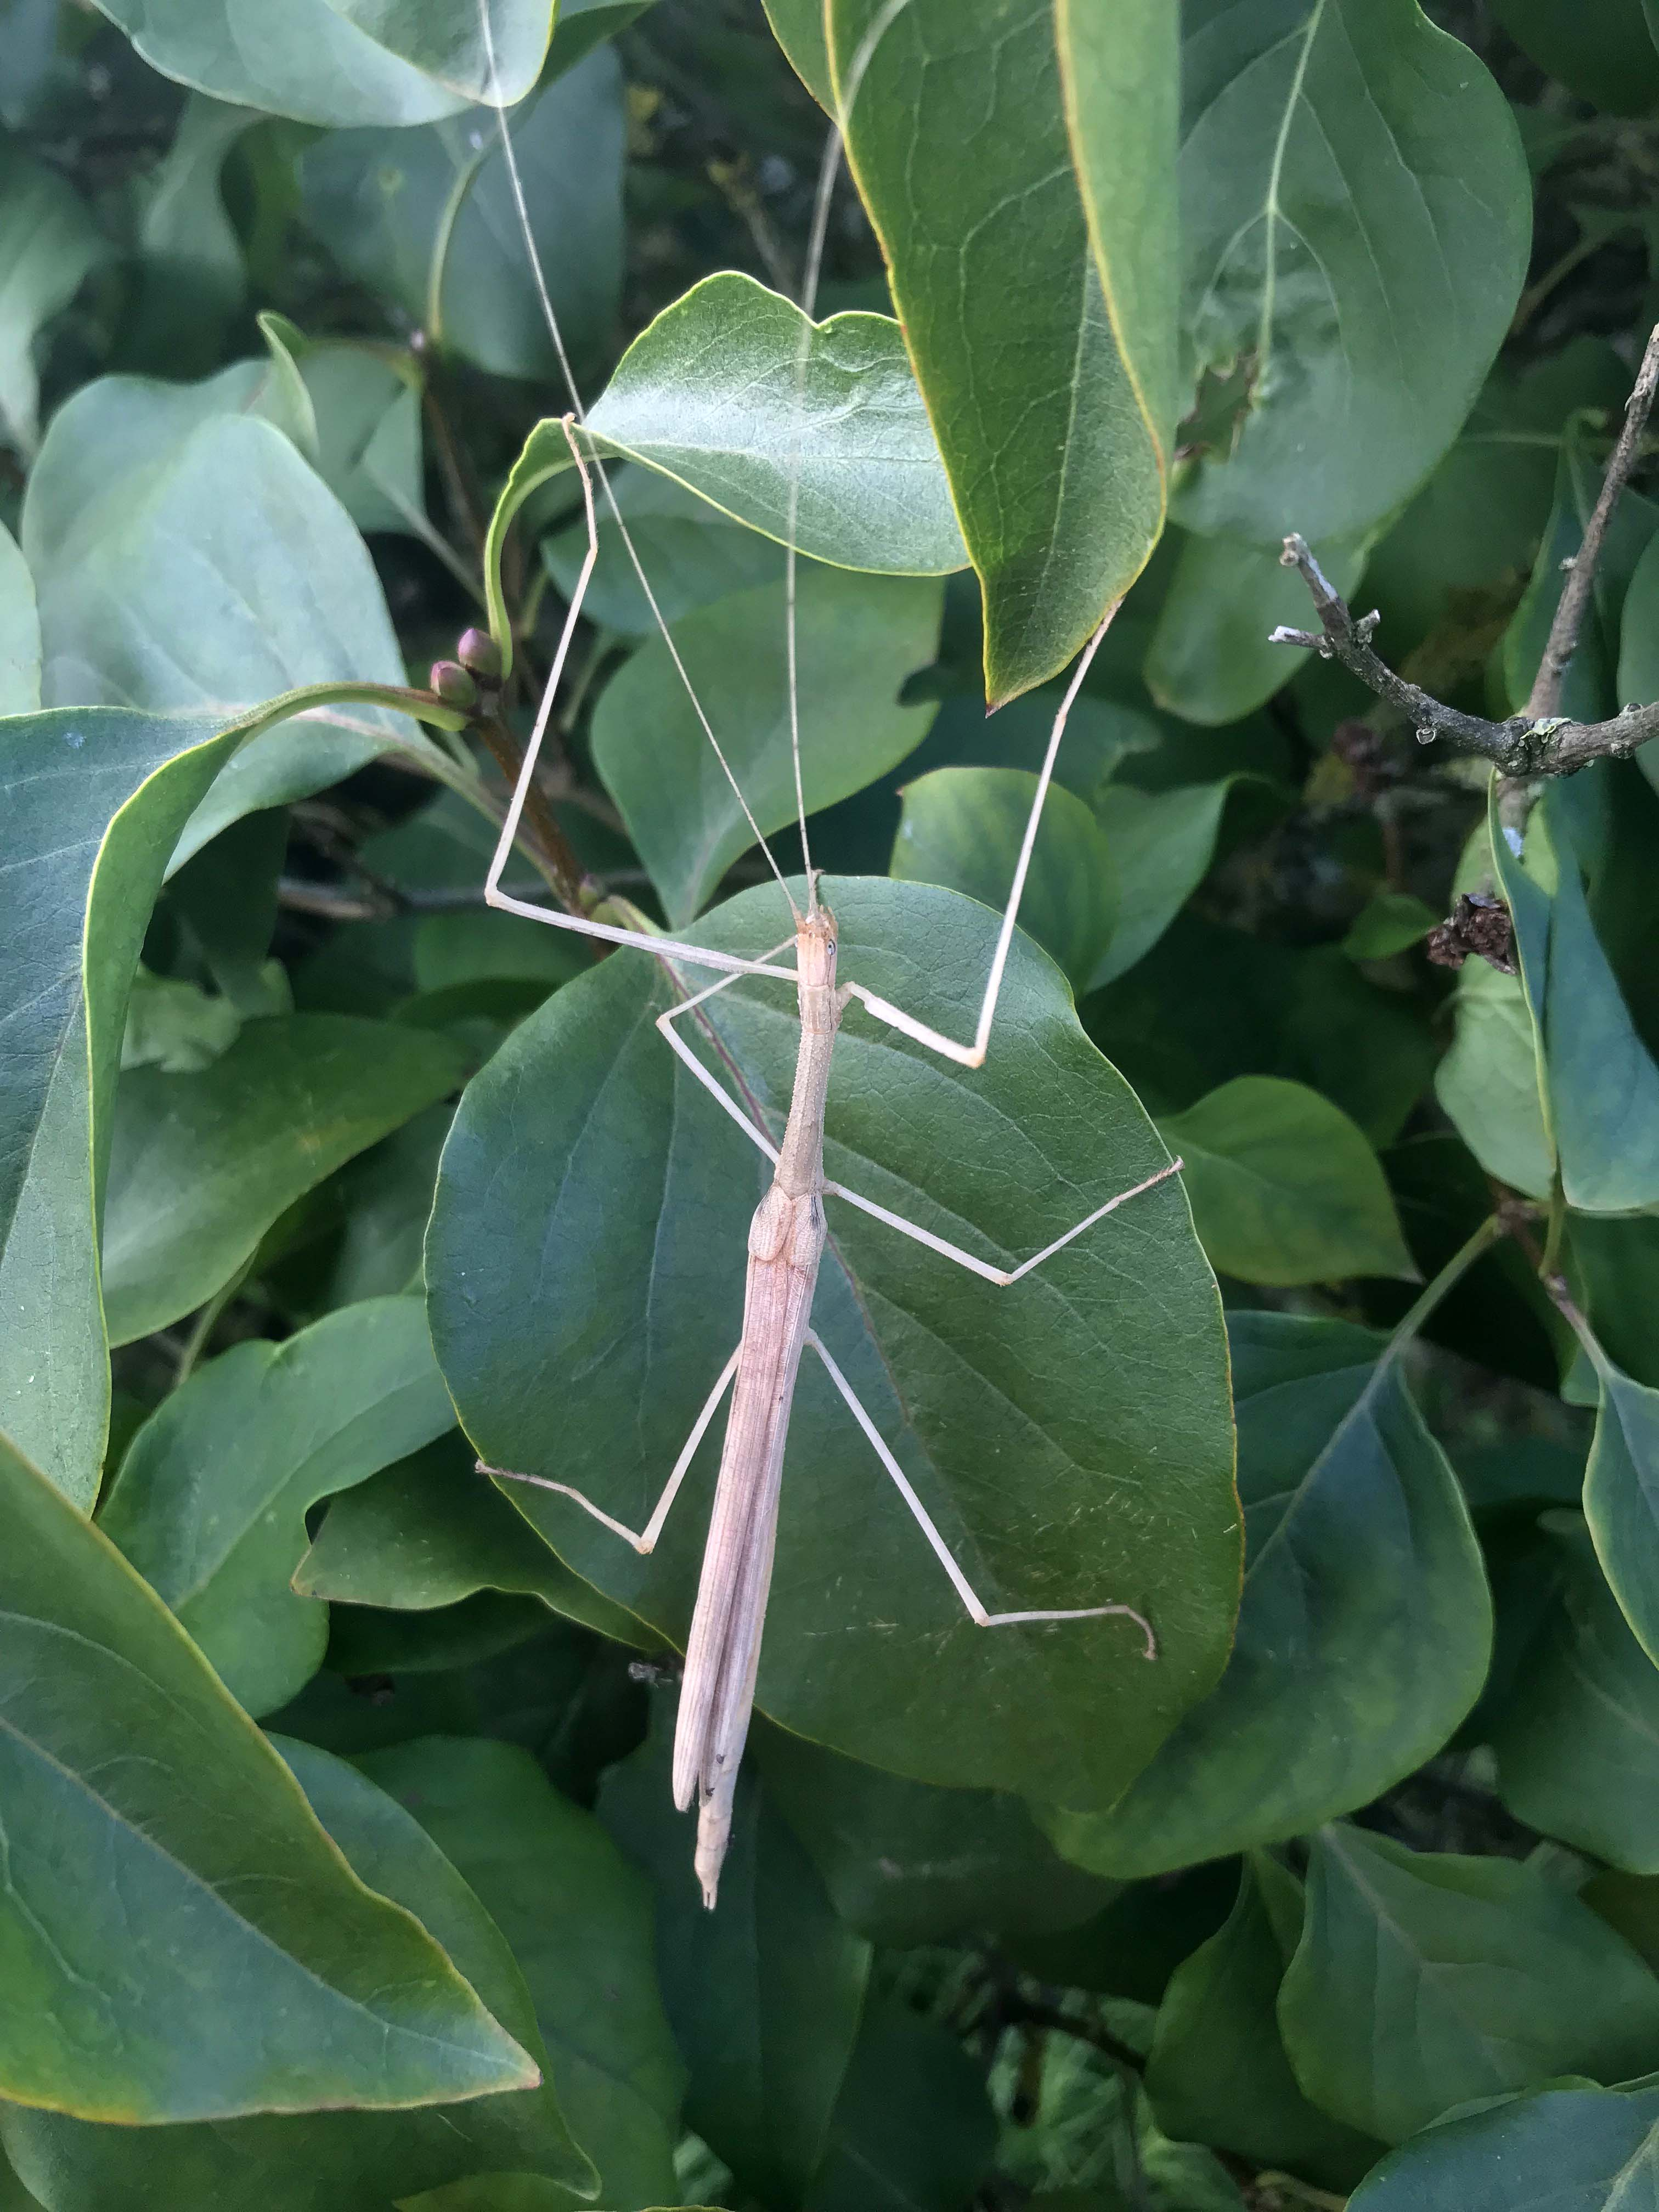 Adult female of Pink Winged Stick Insect (Sipyloidea sipylus)